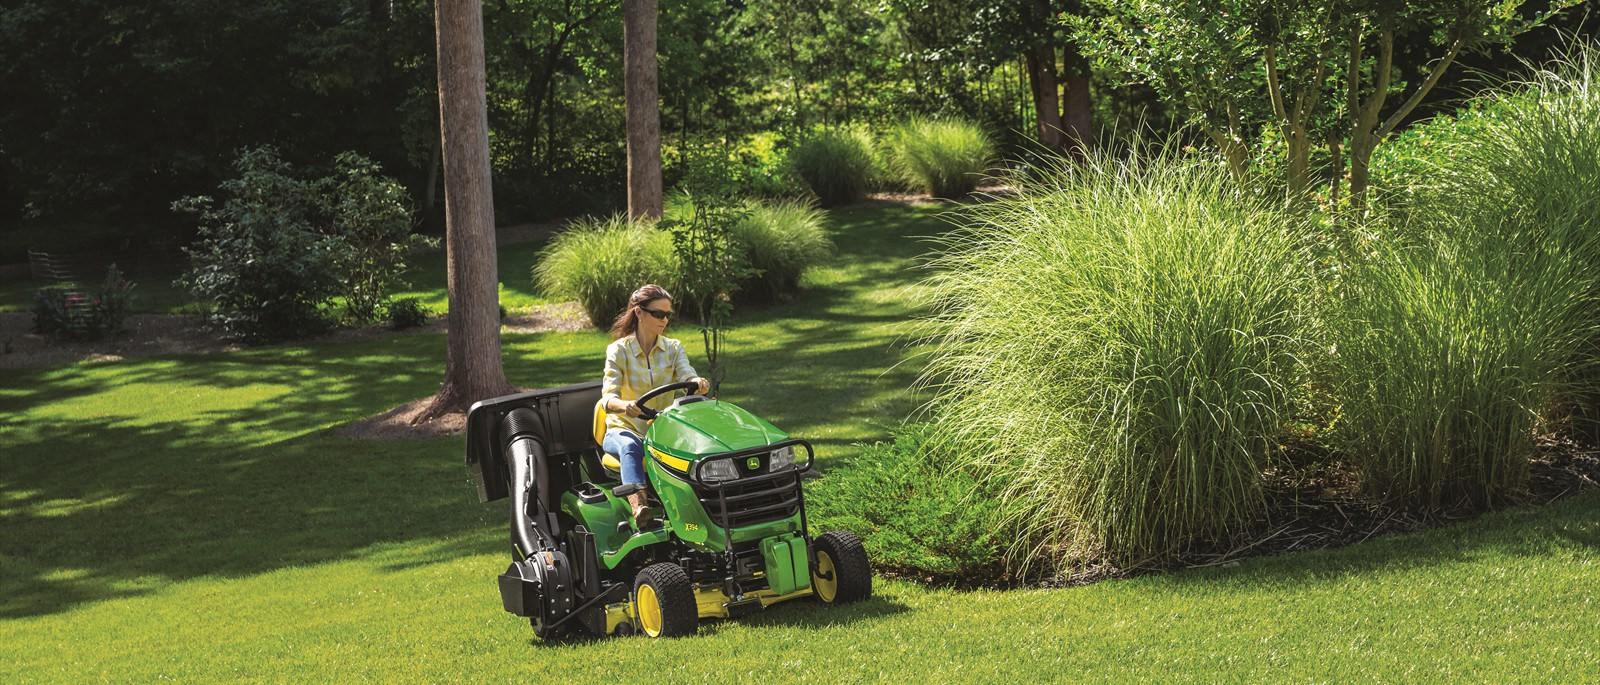 John Deere Lawn and Garden Authorised Dealer